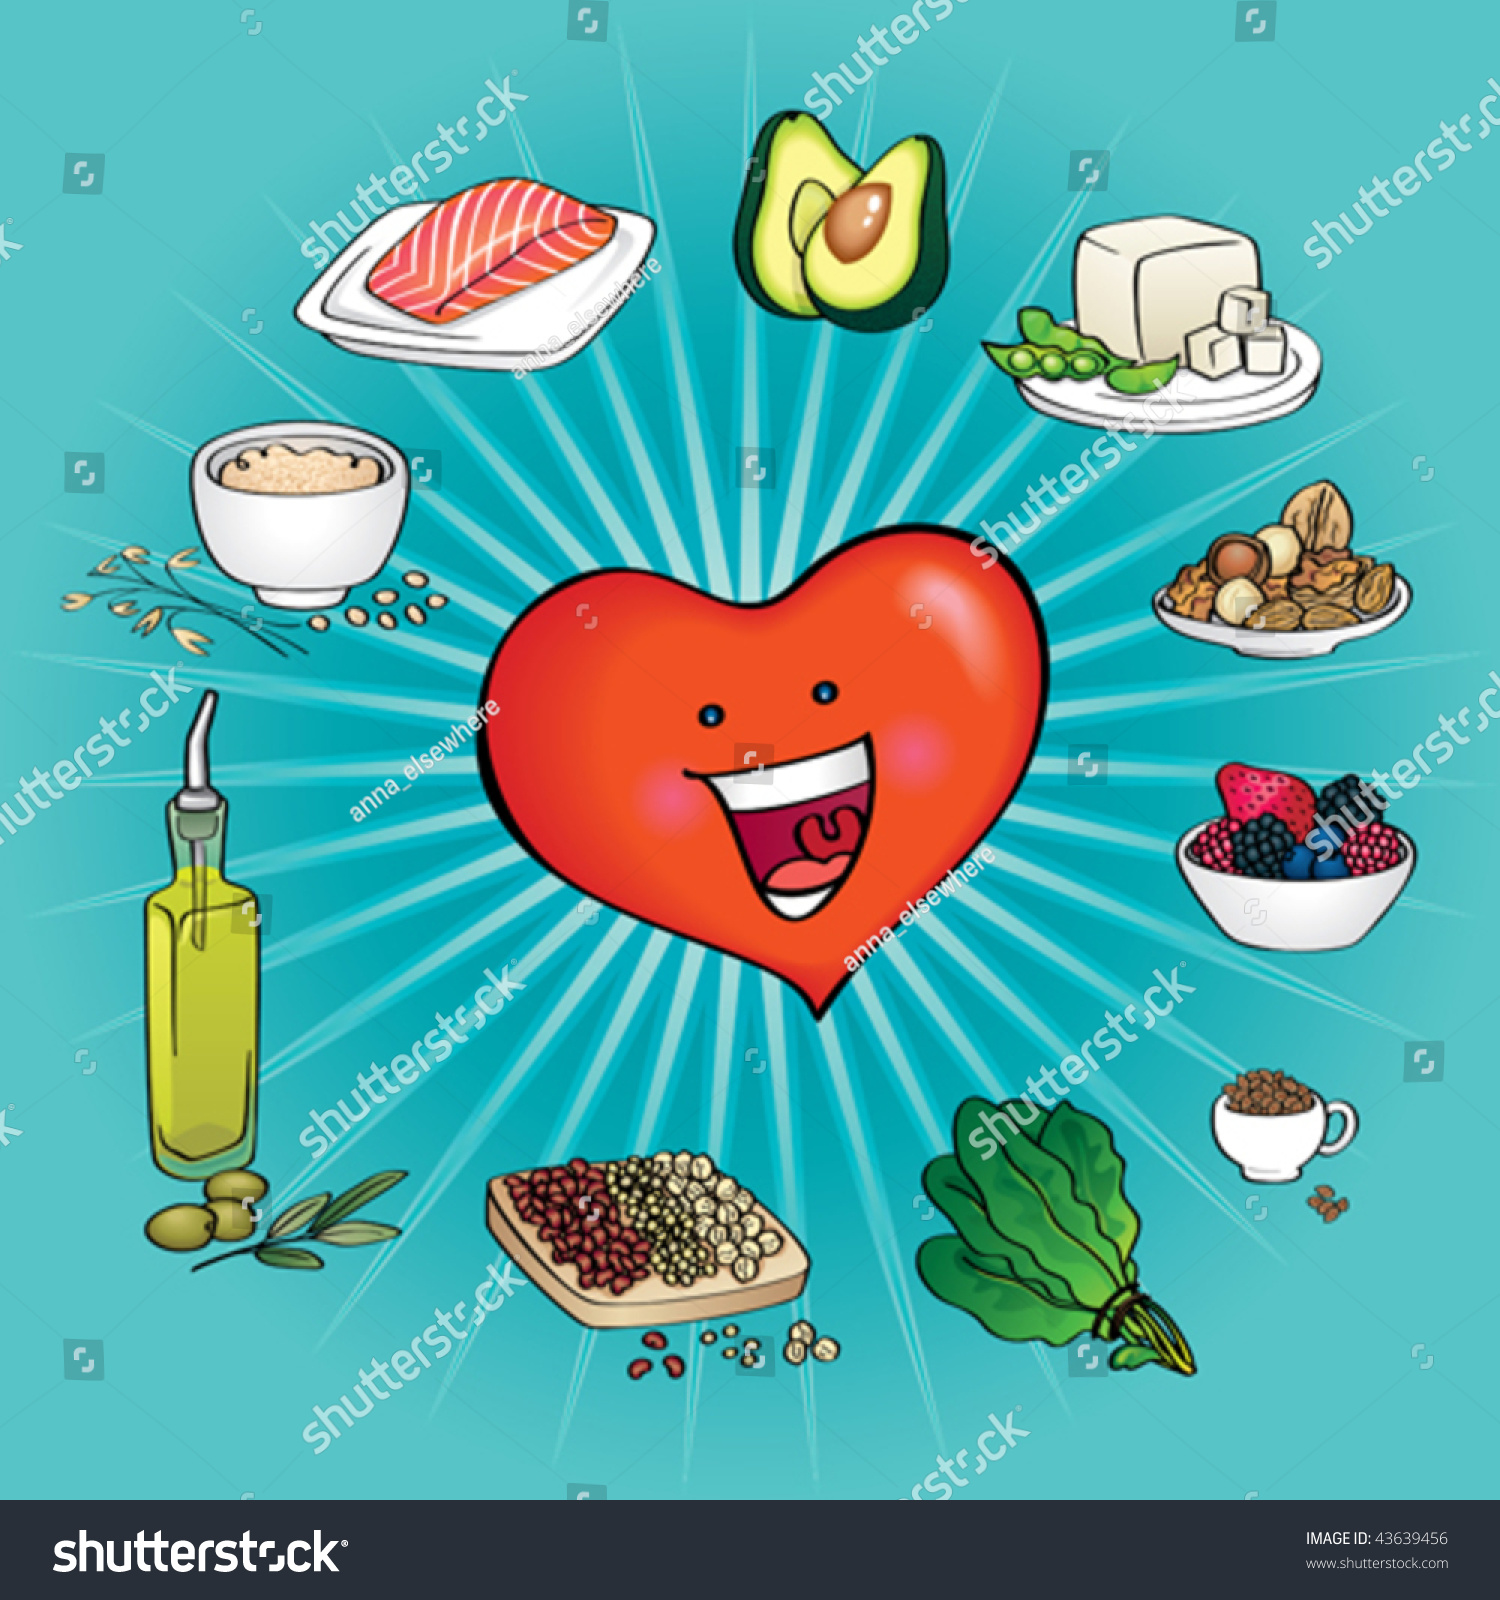 Ten Best Foods Heart Healthy Cartoon Stock Vector 43639456 ...